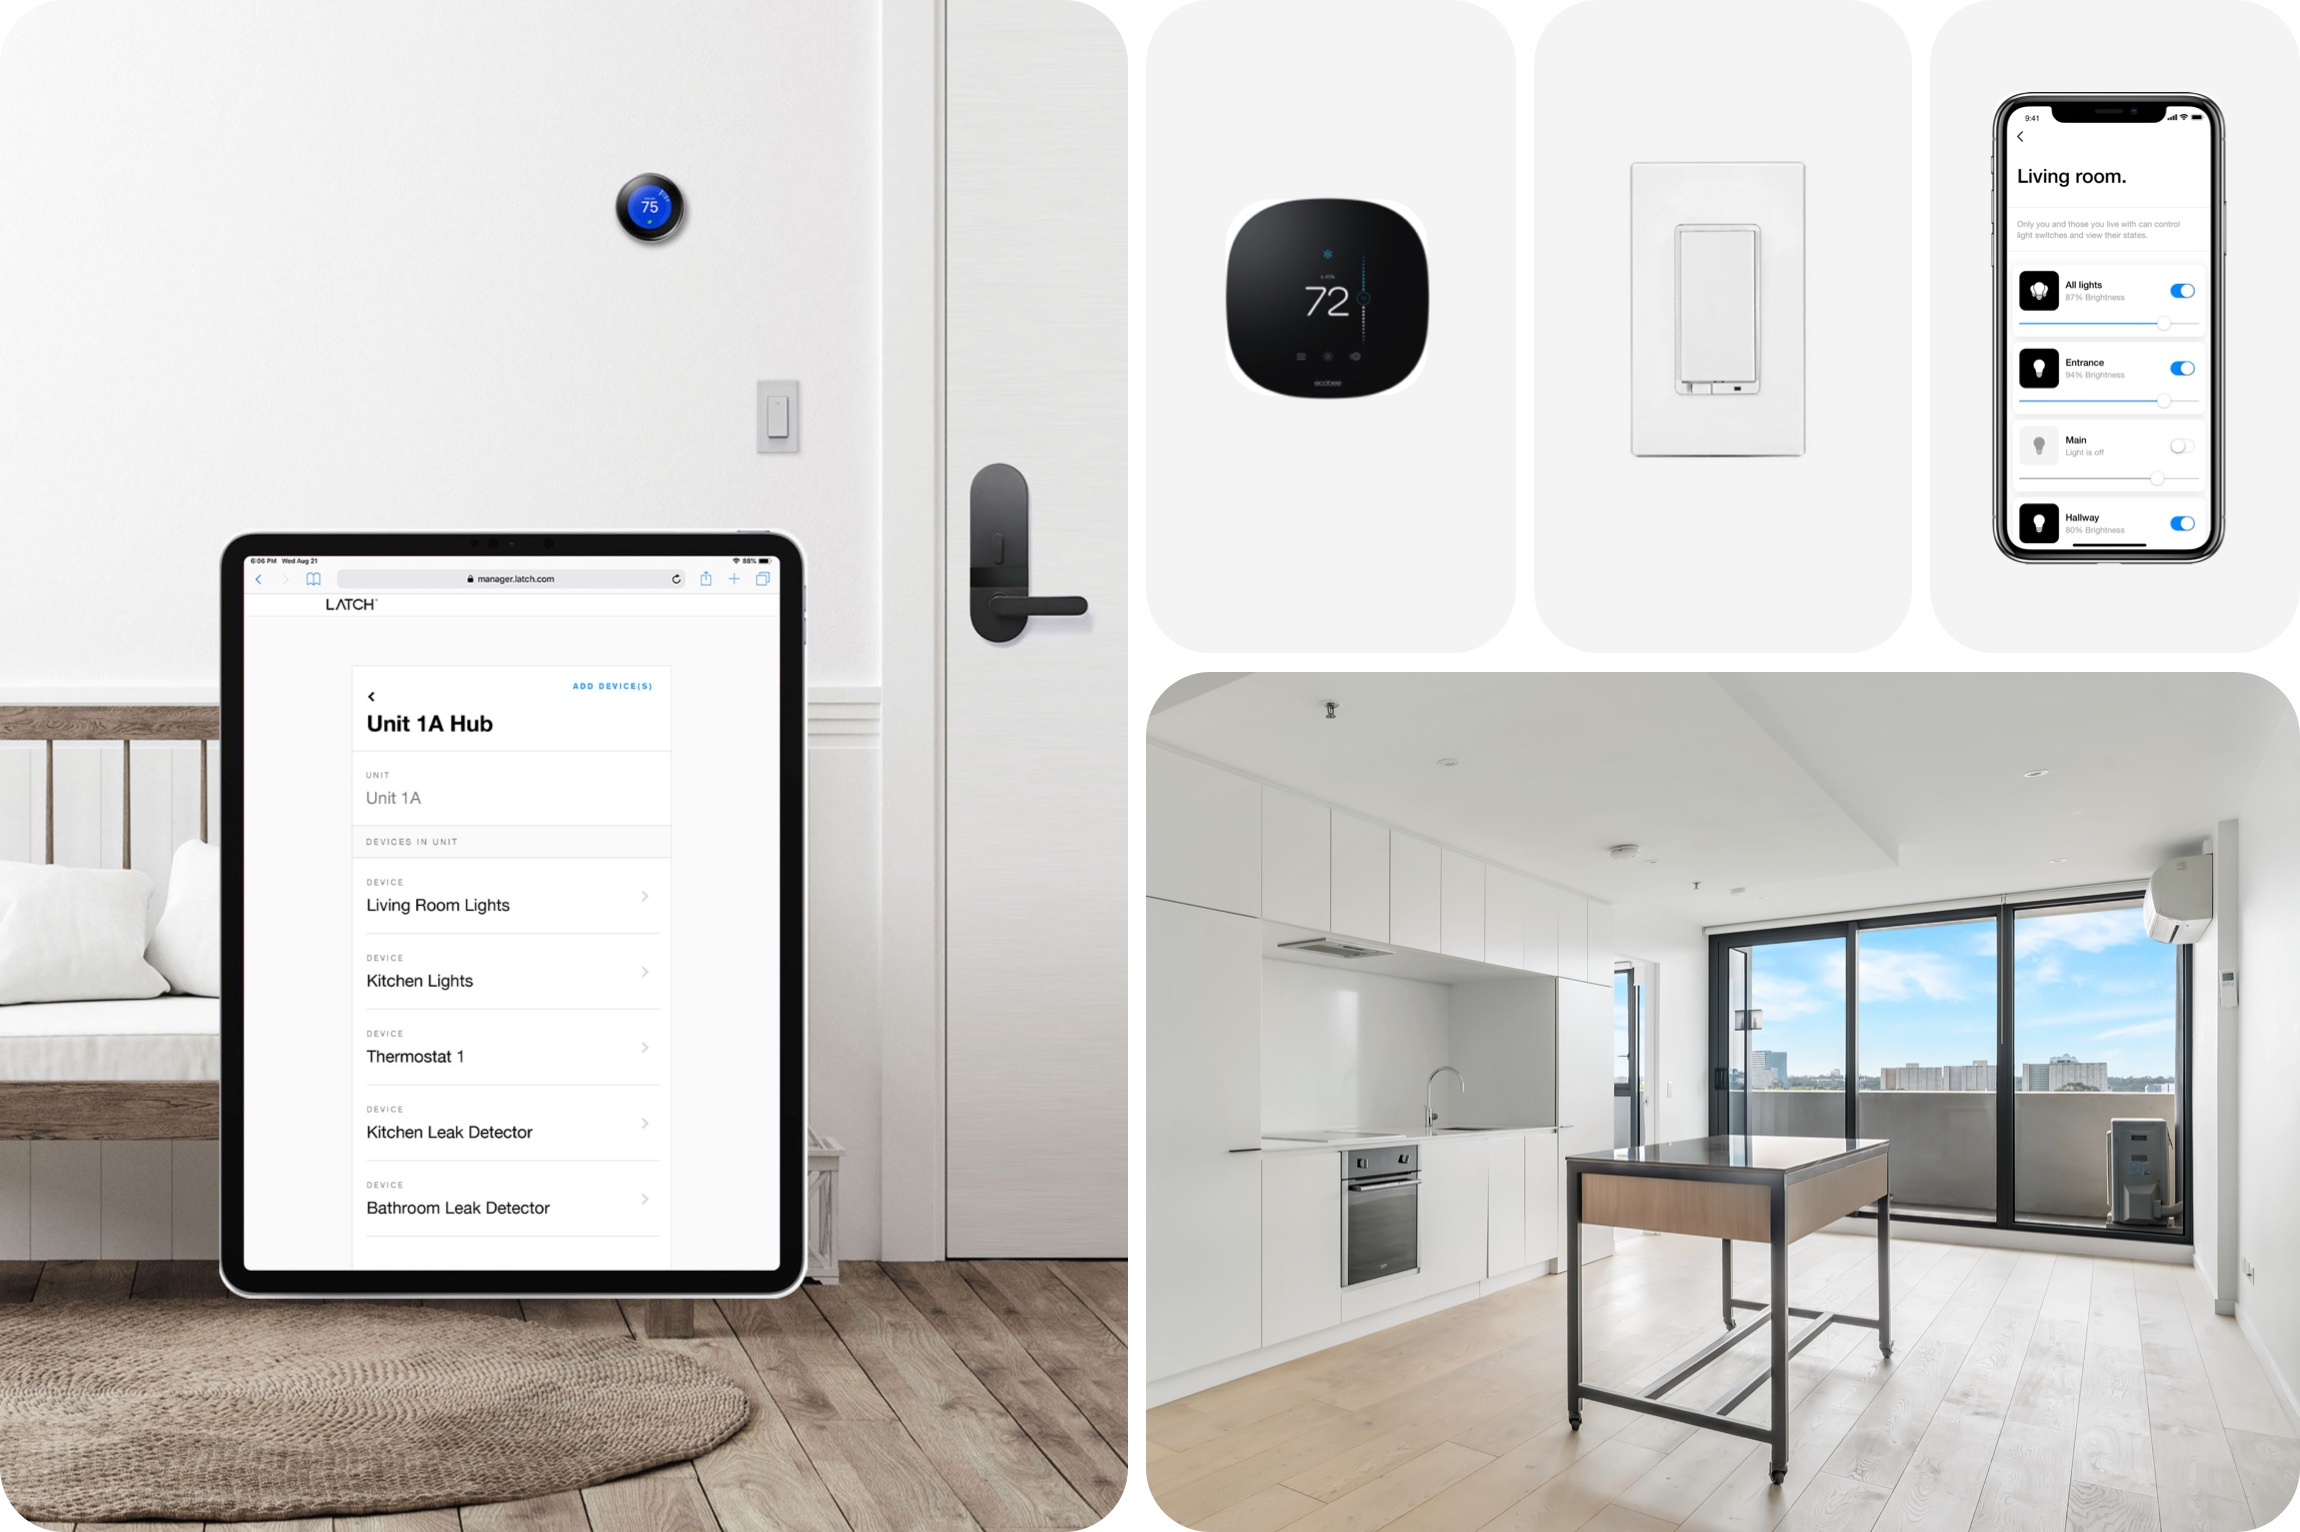 Smart home devices like Google Nest, ecobee, Jasco light switch, and air conditioning device are shown controlled by the Latch App and Latch Manager in an apartment